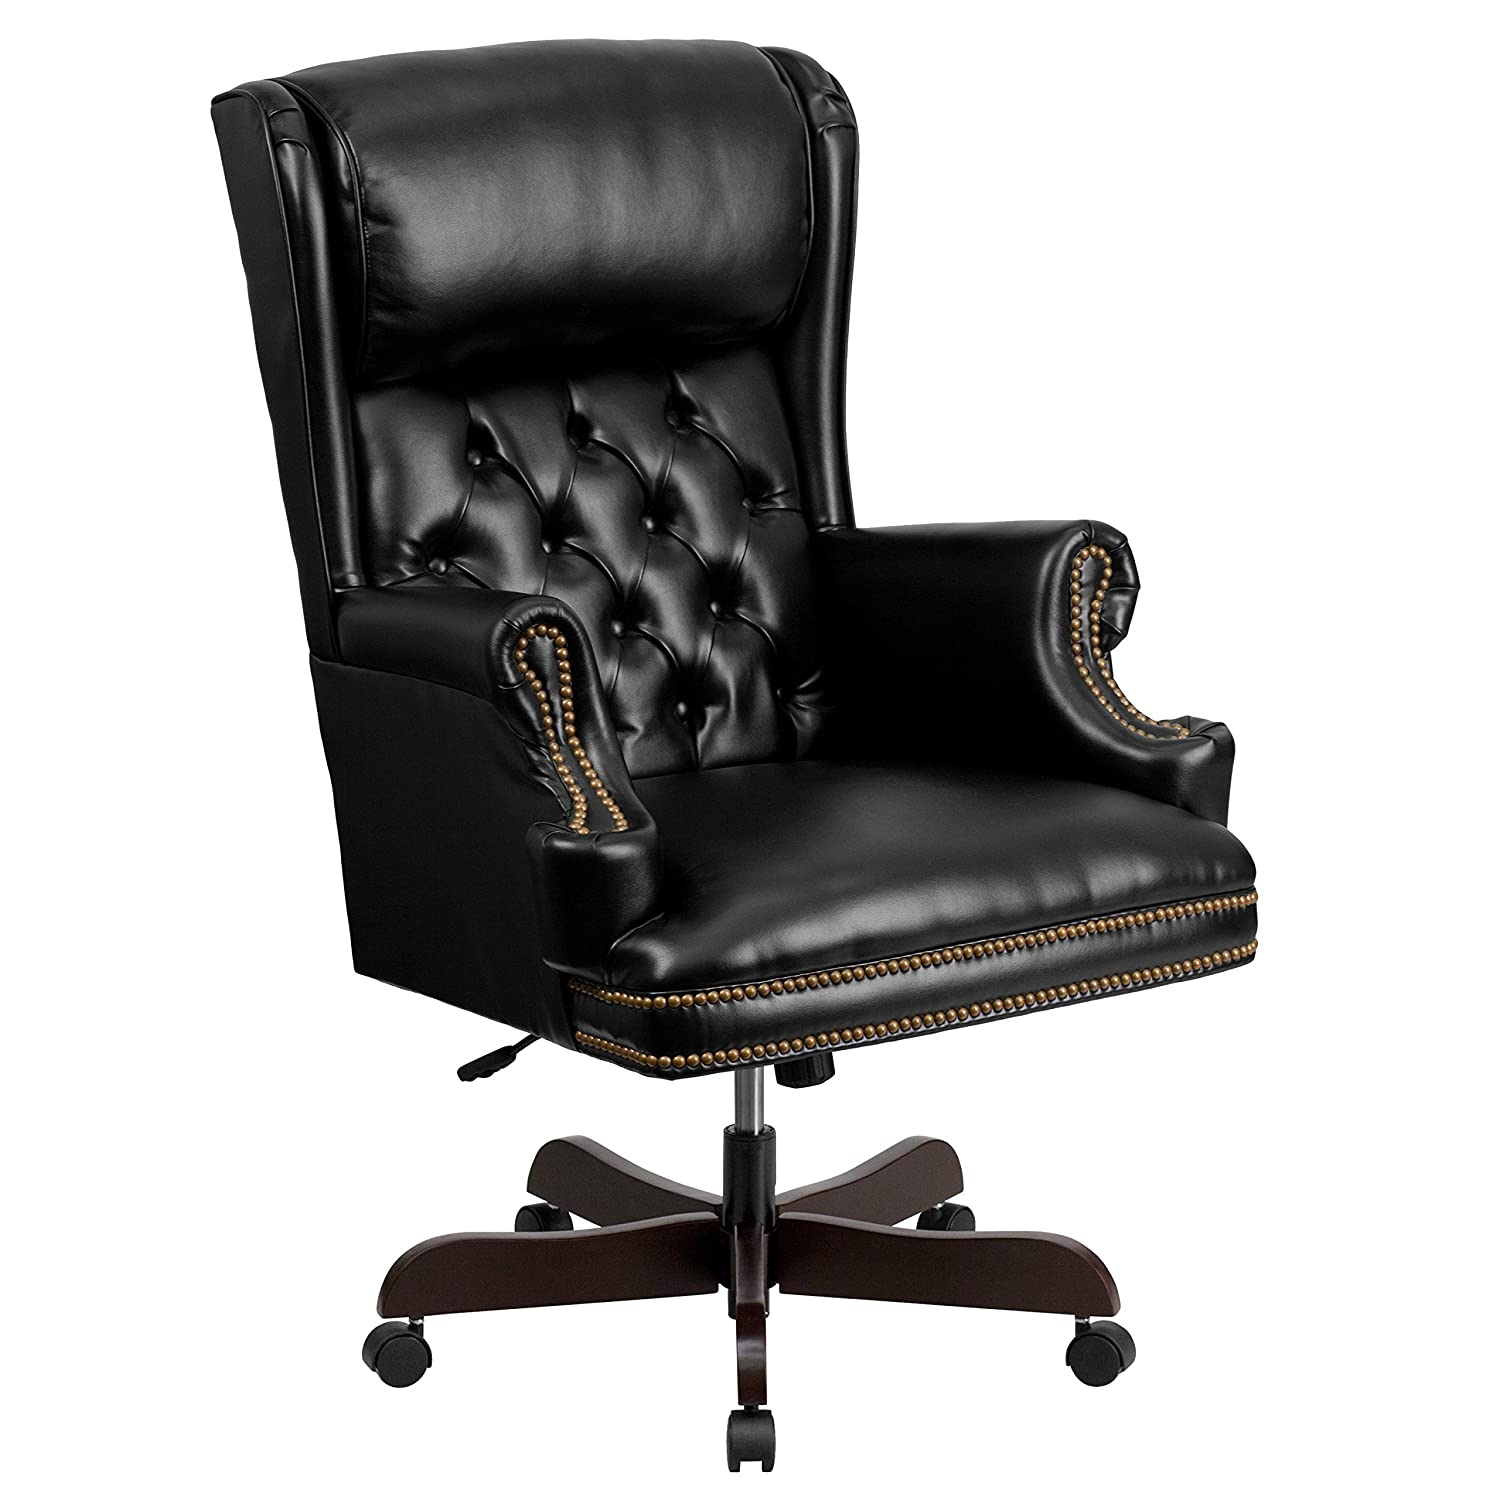 Flash Furniture High Back Traditional Tufted Black Leather Executive Ergonomic Office Chair with Oversized Headrest & Nail Trim Arms